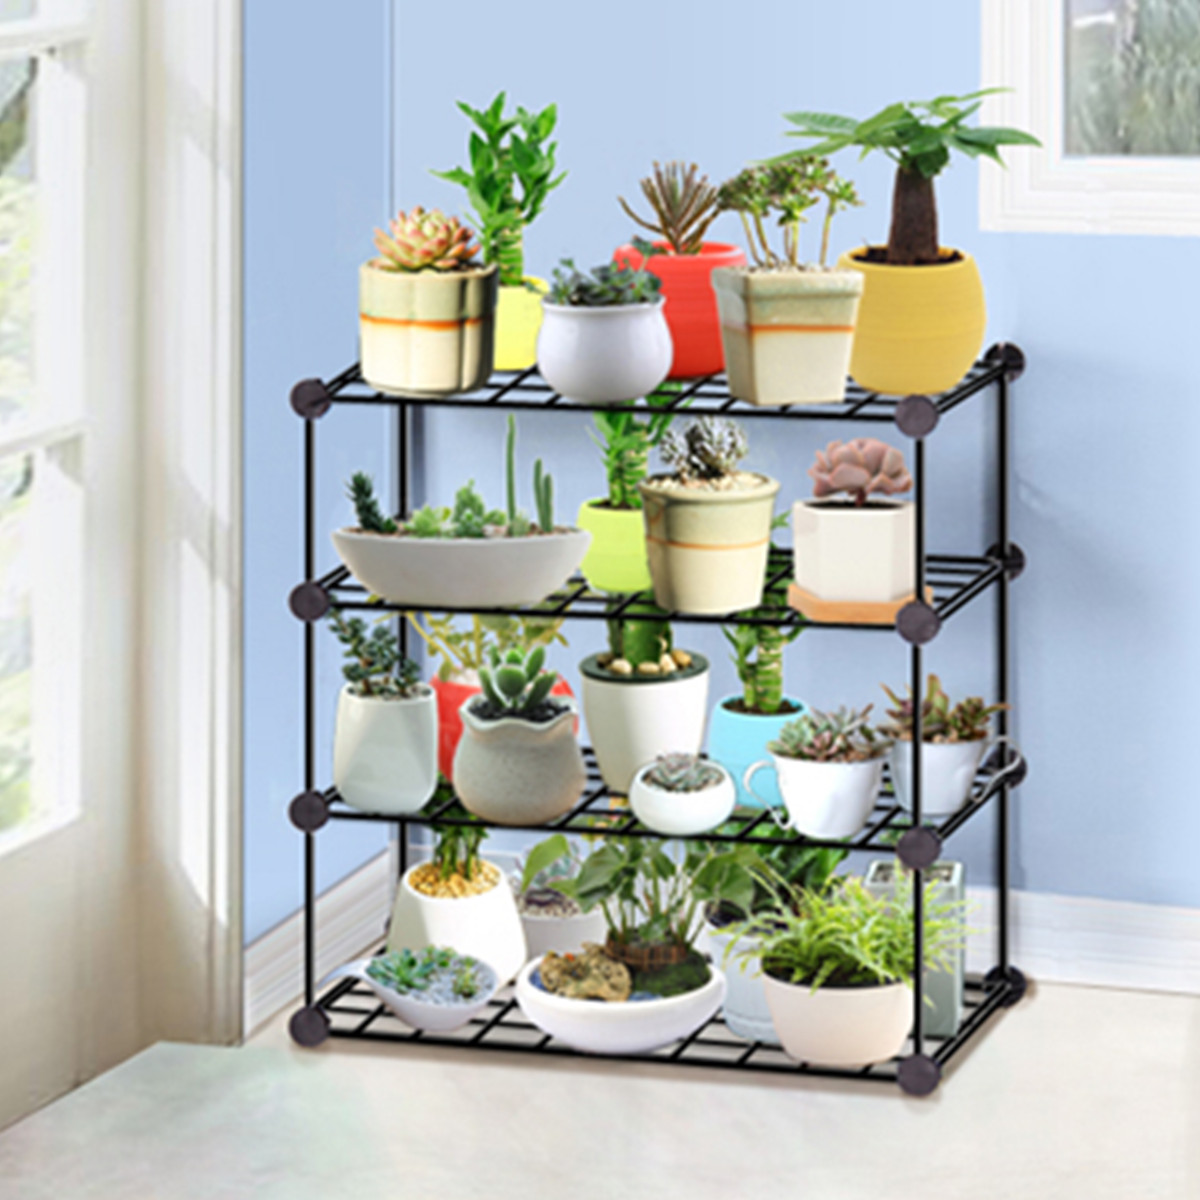 Household Wrought Iron Multi layer Plant stand Succulent Shelf Rack Balcony Simple Indoor Coffee Bar Garden Flower Pot Shelf|Plant Shelves| |  - title=